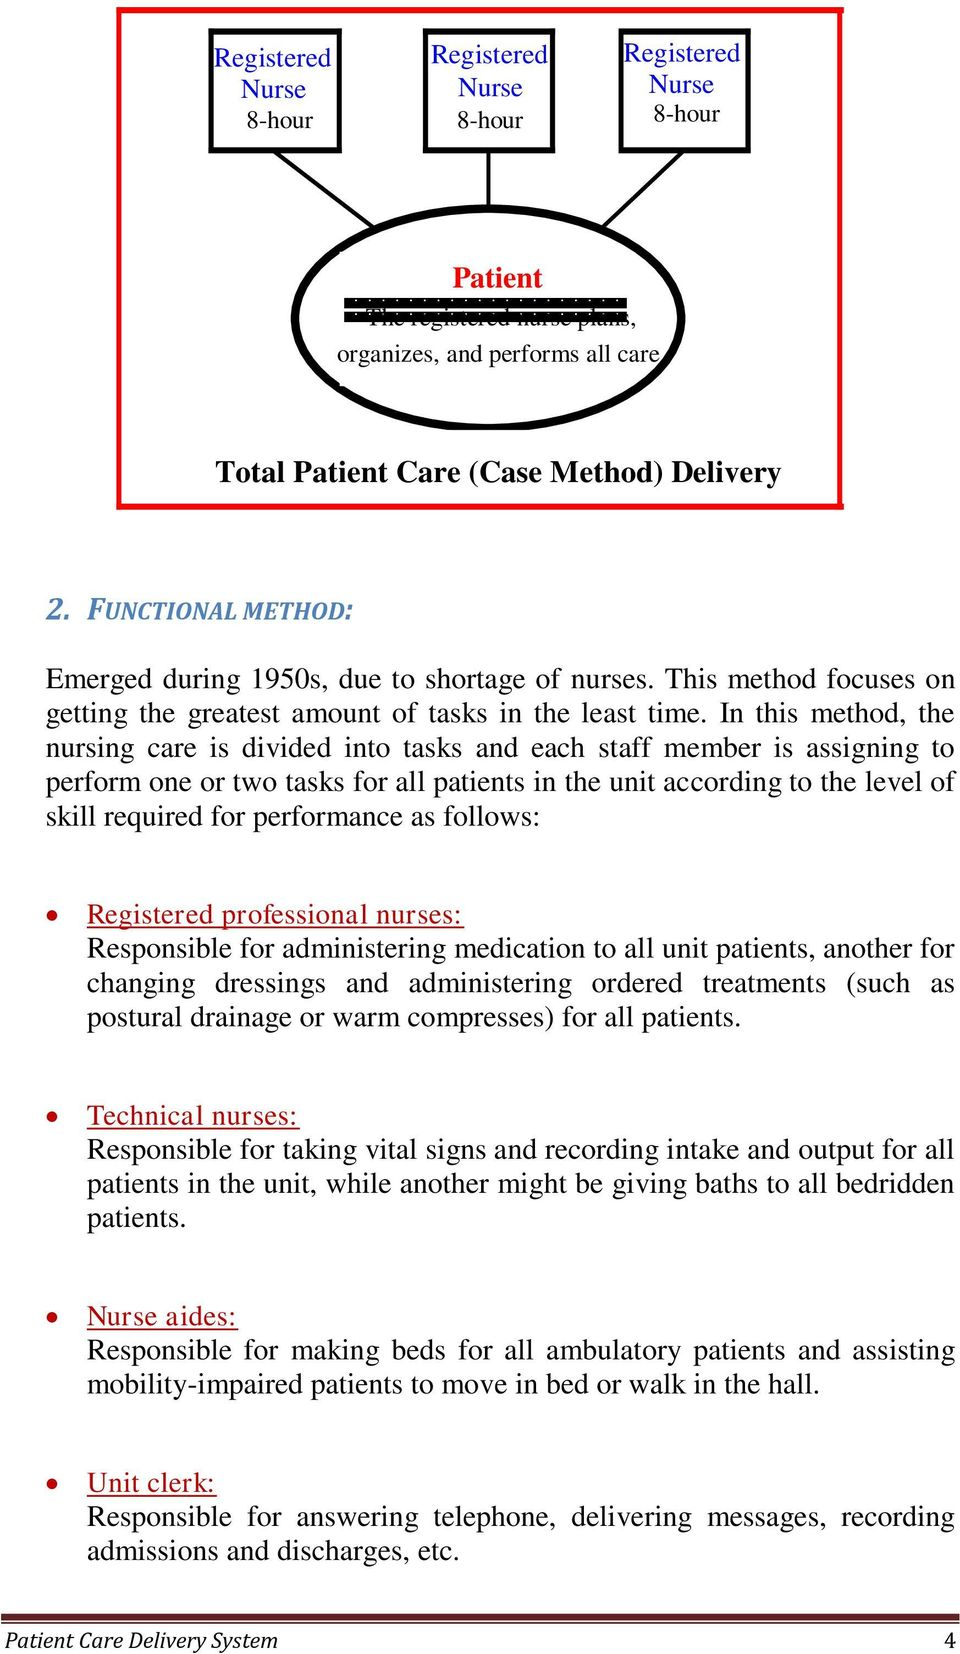 In this method, the nursing care is divided into tasks and each staff member is assigning to perform one or two tasks for all patients in the unit according to the level of skill required for